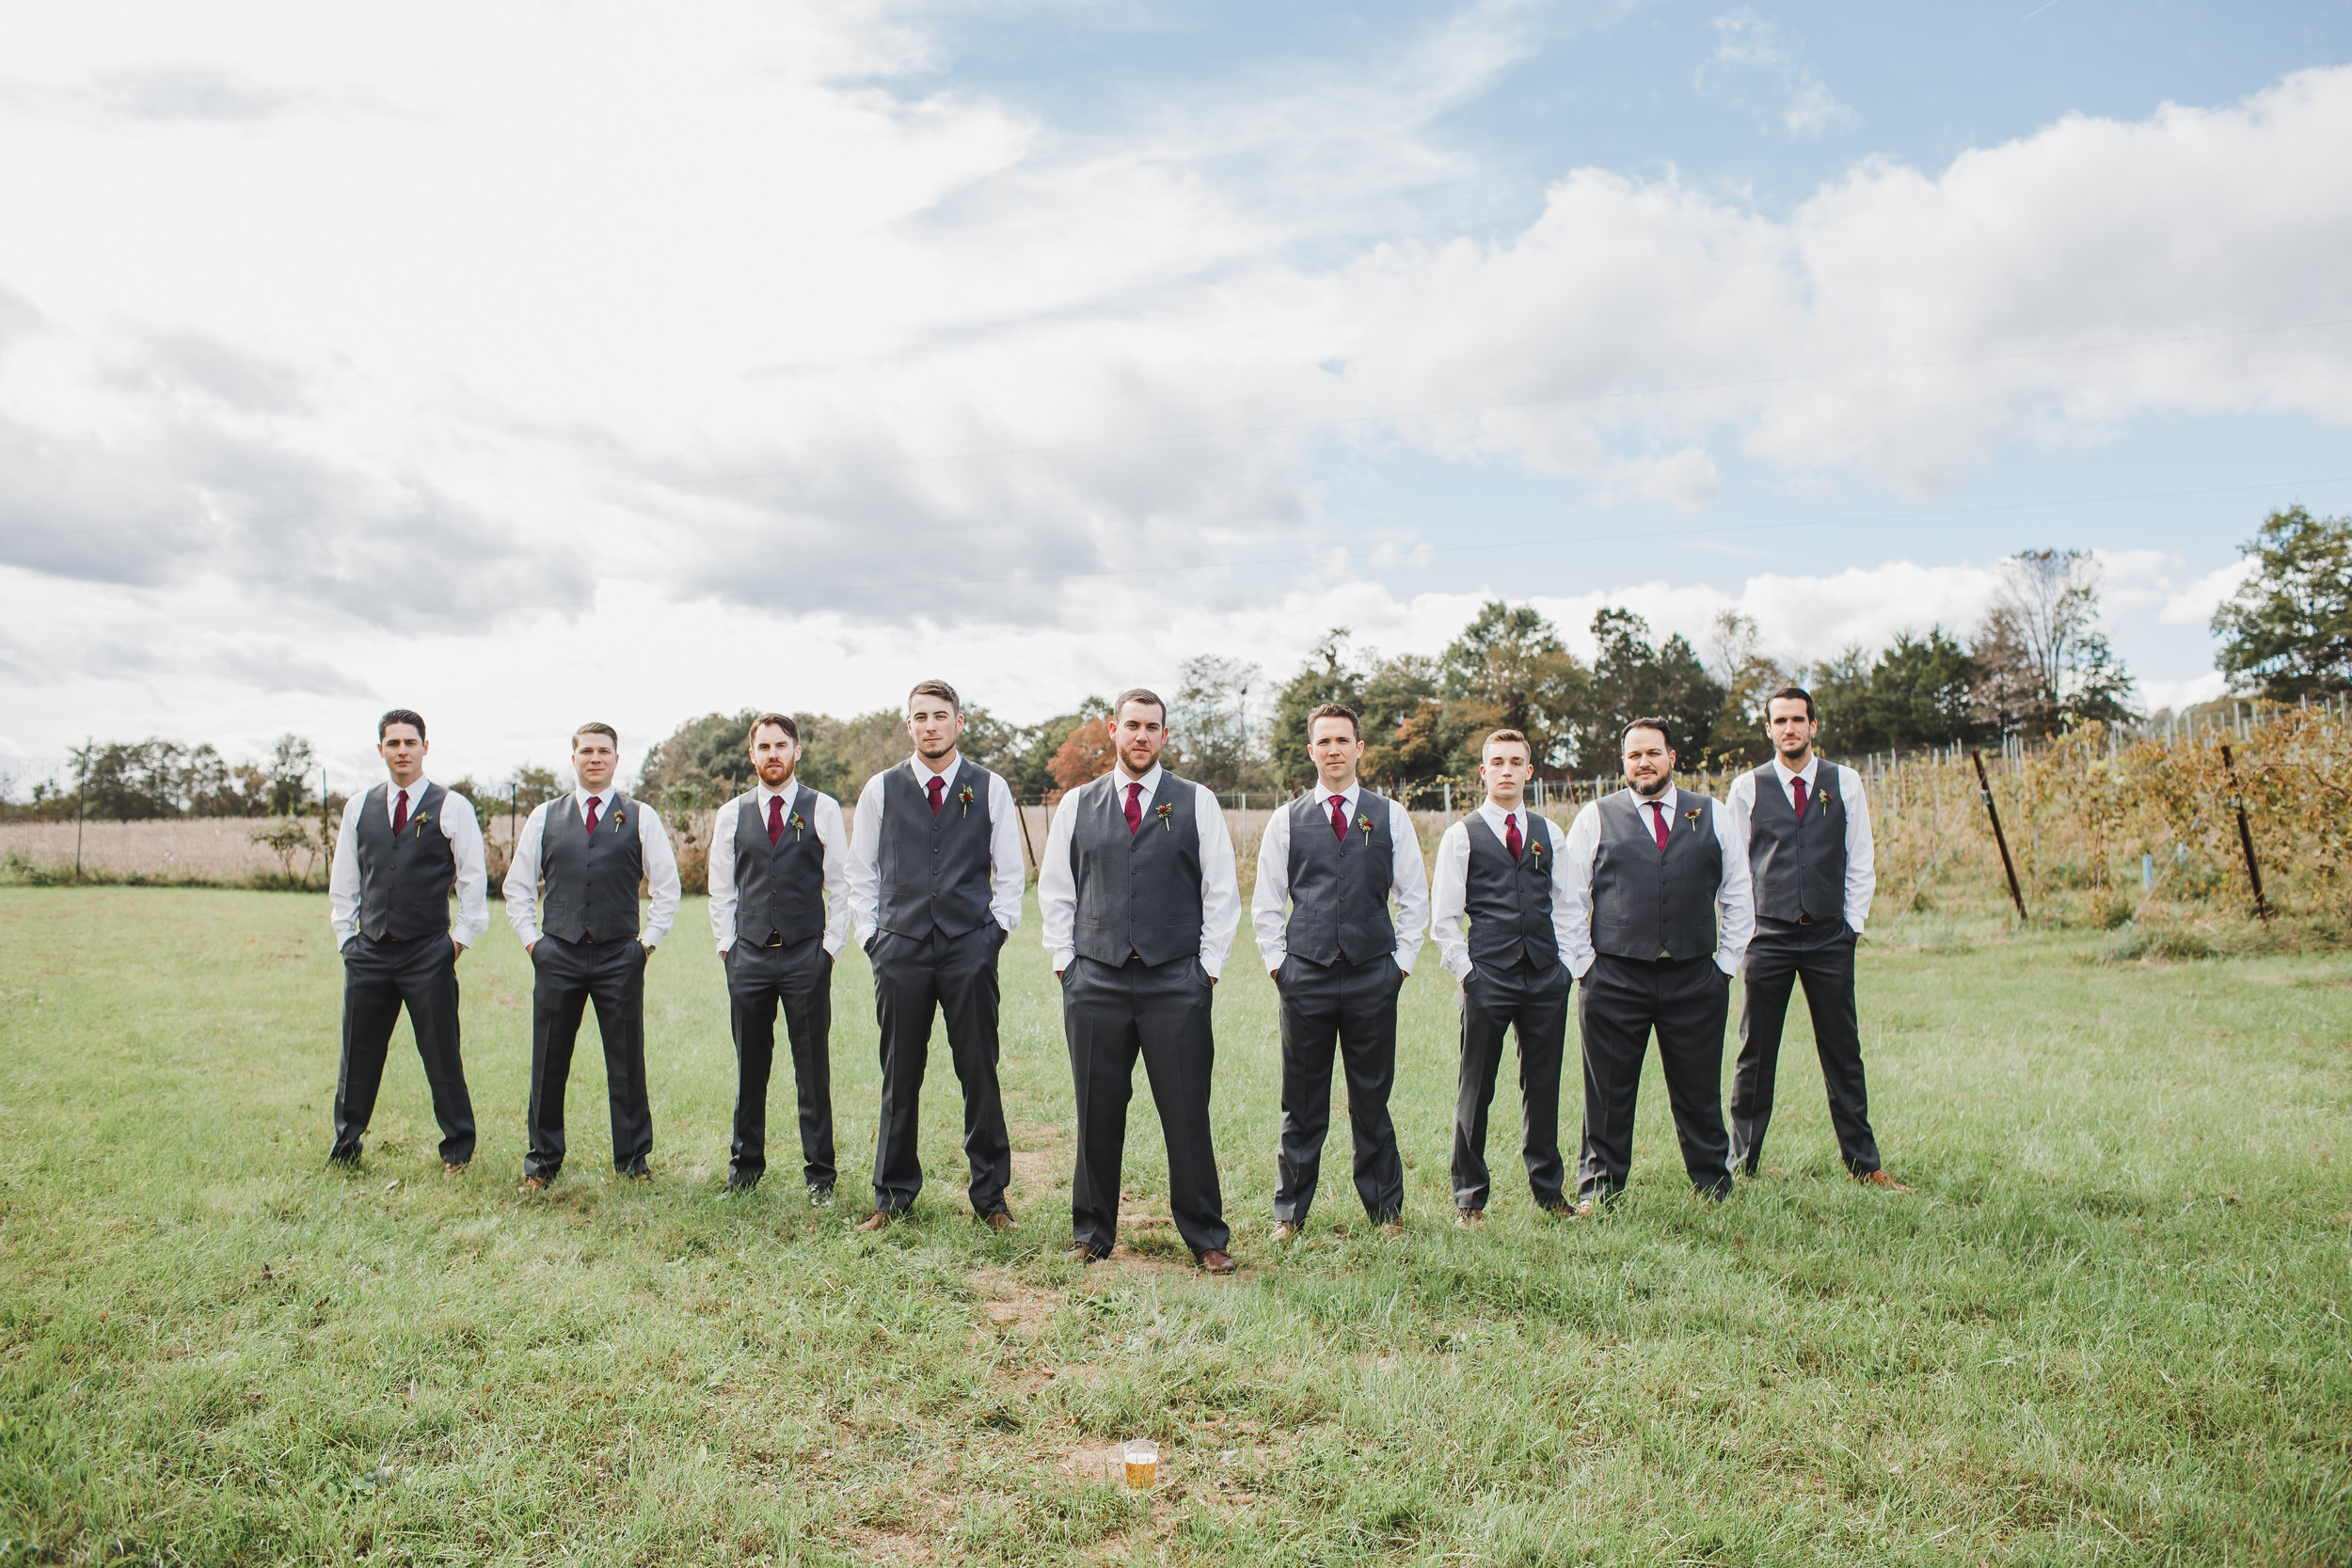 Fling - Virginia Wedding Photographer - Photography by Amy Nicole-389-2.jpg